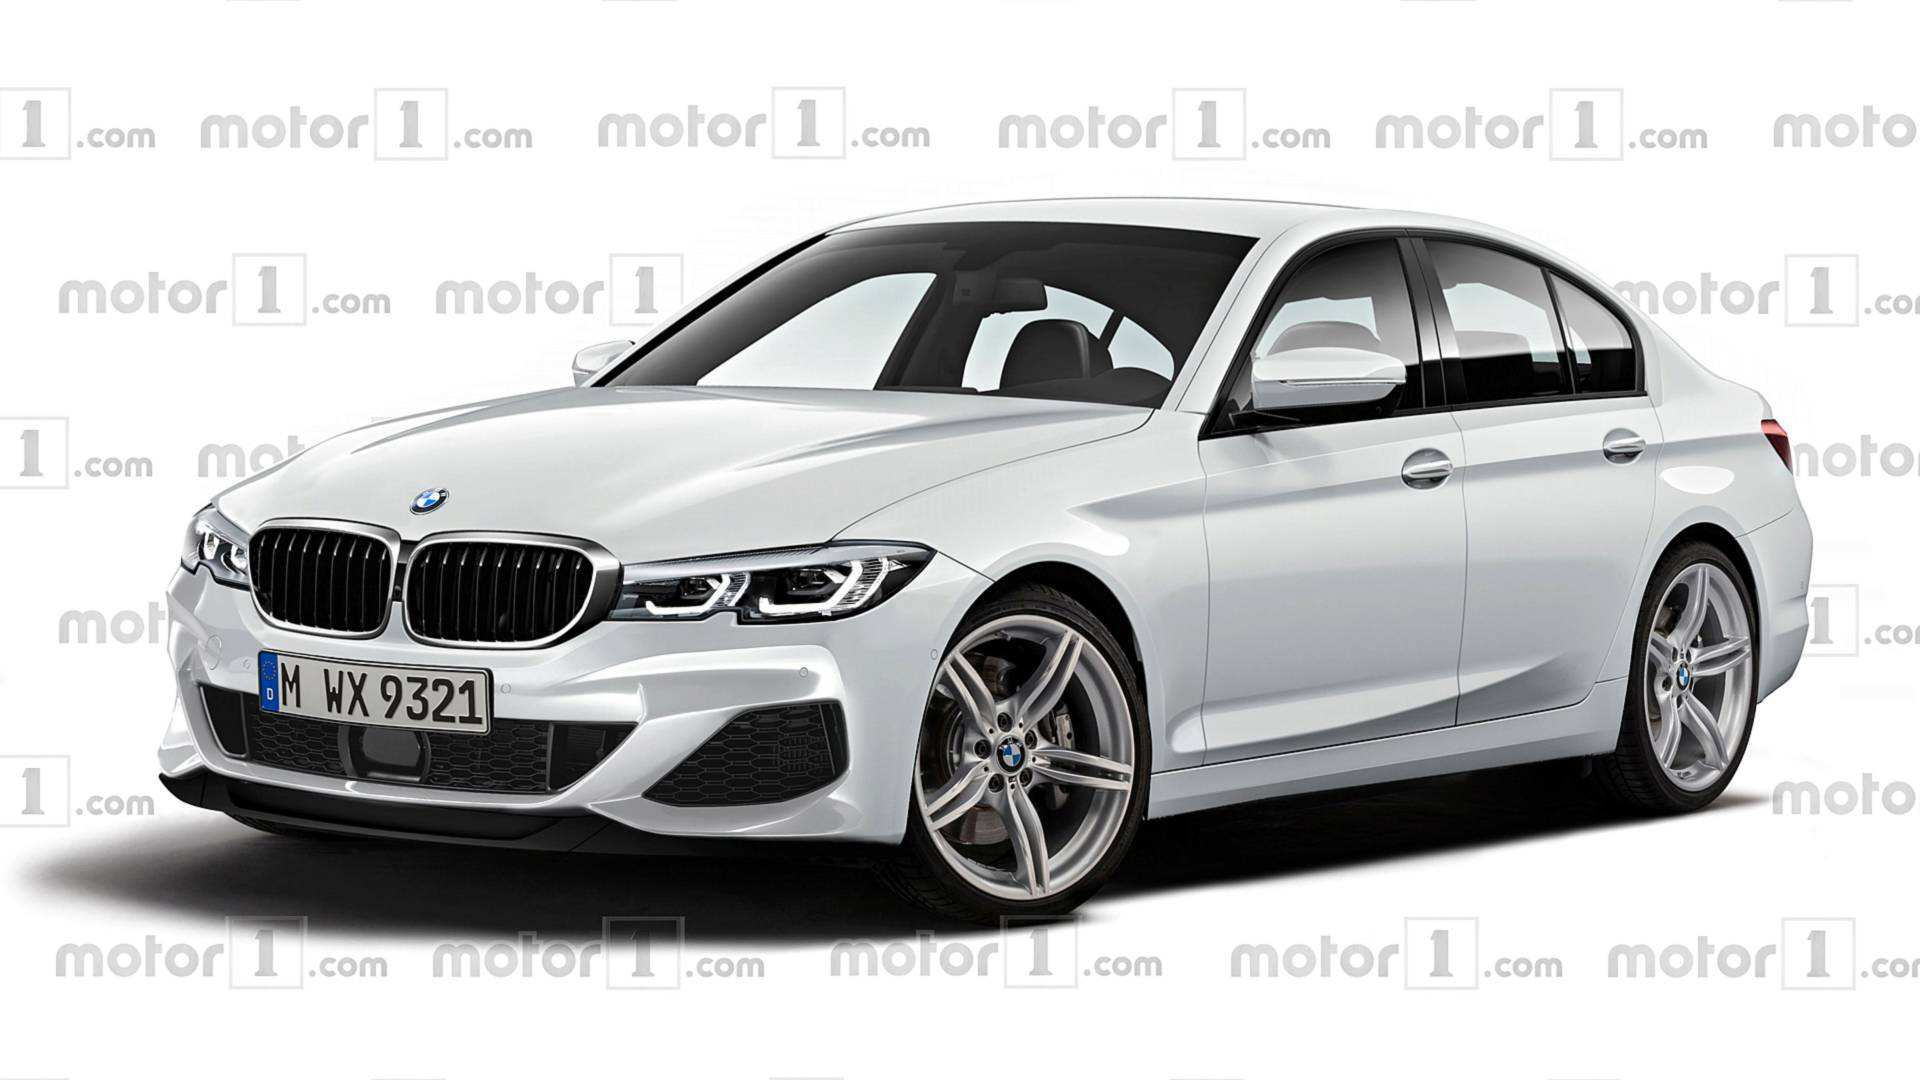 78 The 2019 BMW 3 Series Edrive Phev Configurations